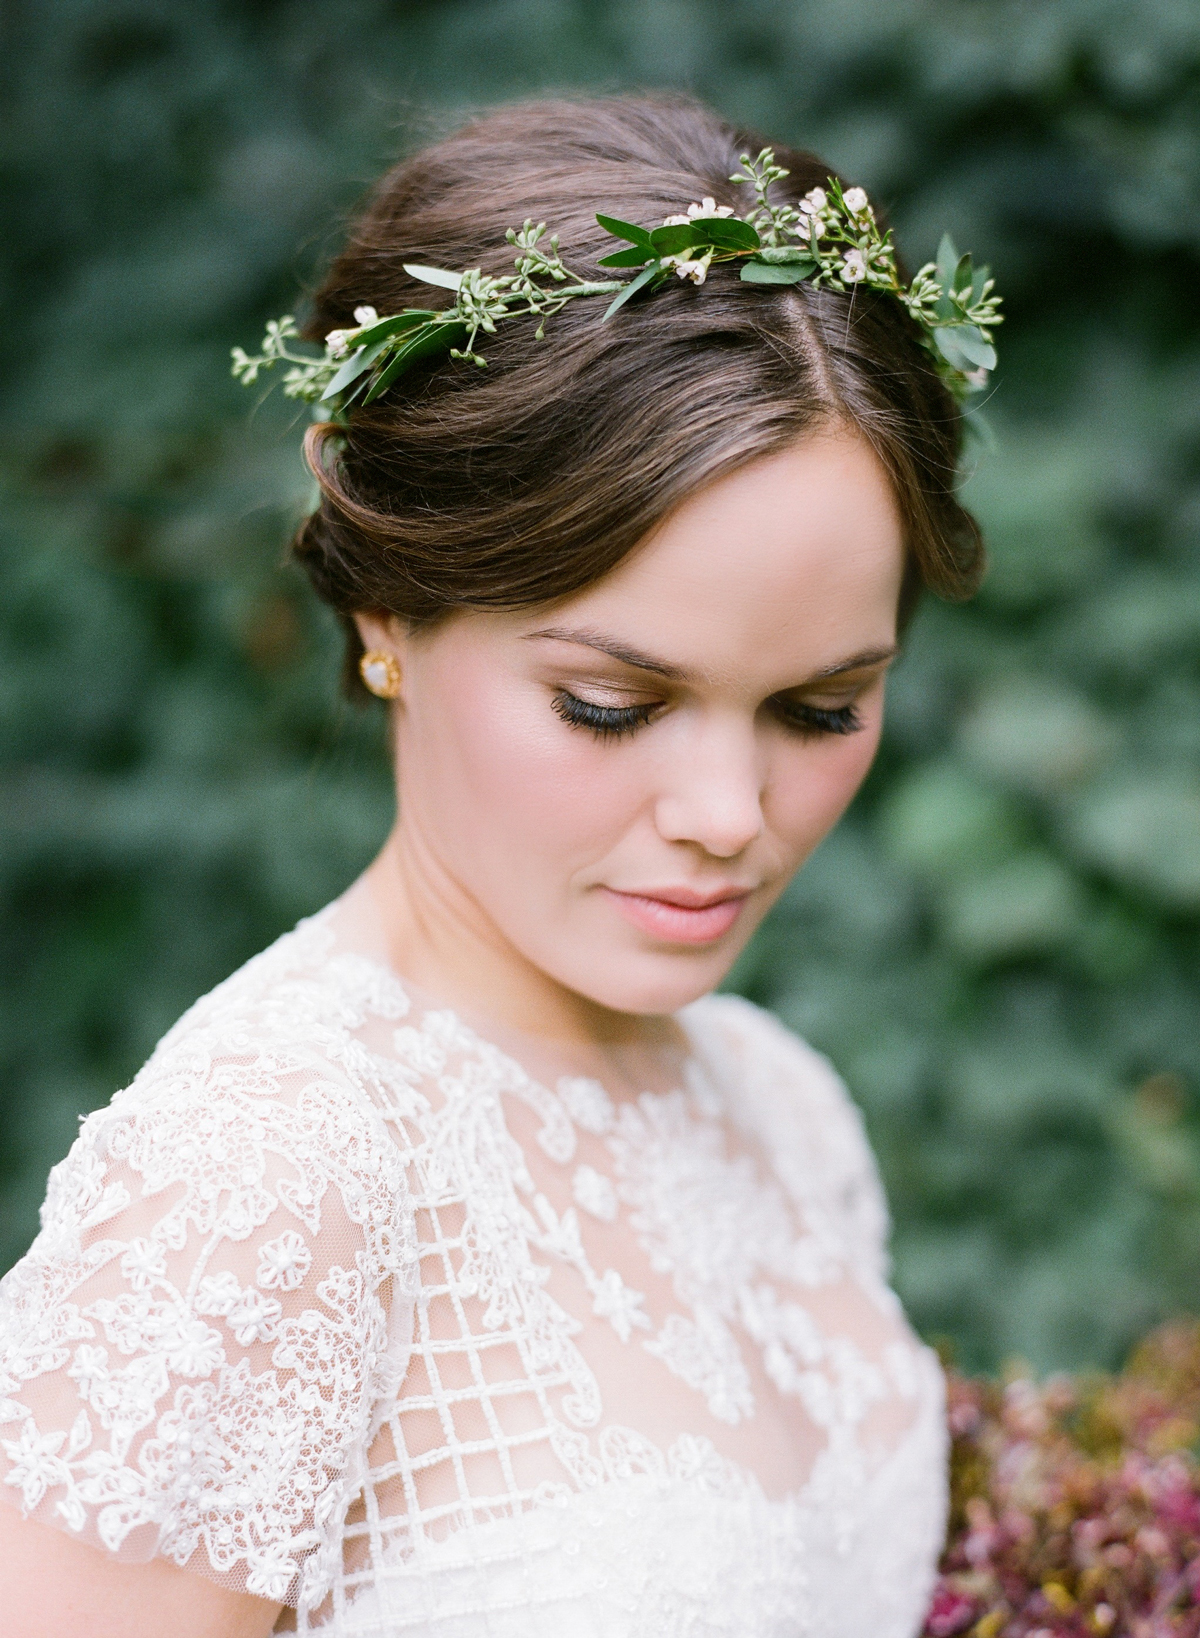 wedding wreath crown worn by bride